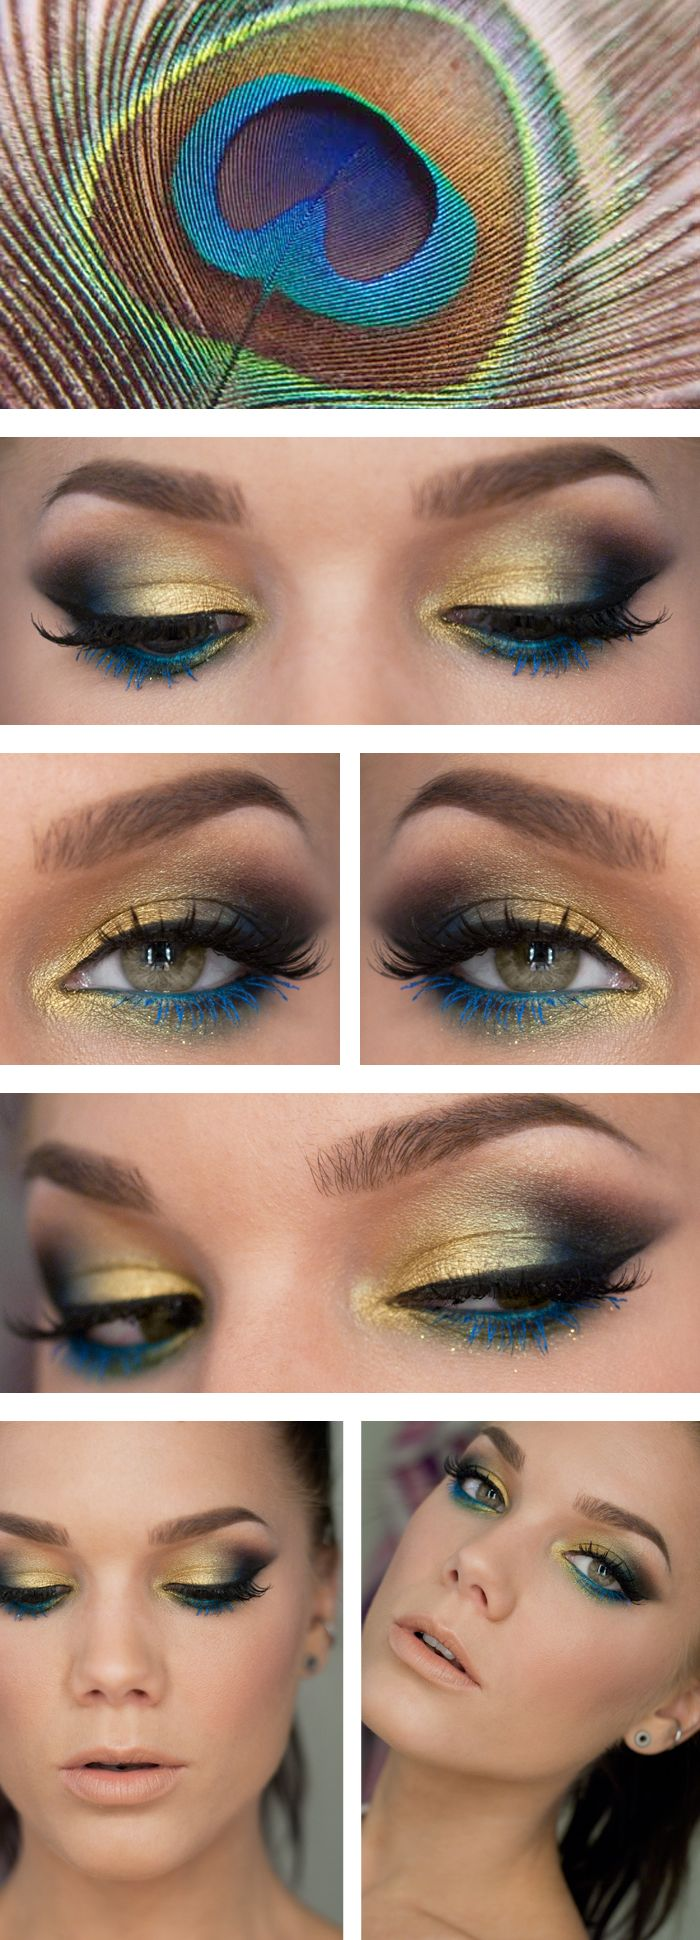 """Today's Look : """"Inspired by a peacock feather"""" -Linda Hallberg (the name says it all, a stunning look, for sure! Gold, teal, blue, green, smoked out) 05/19/13 -- I love this look, except for the blue mascara. I'd just leave it black."""